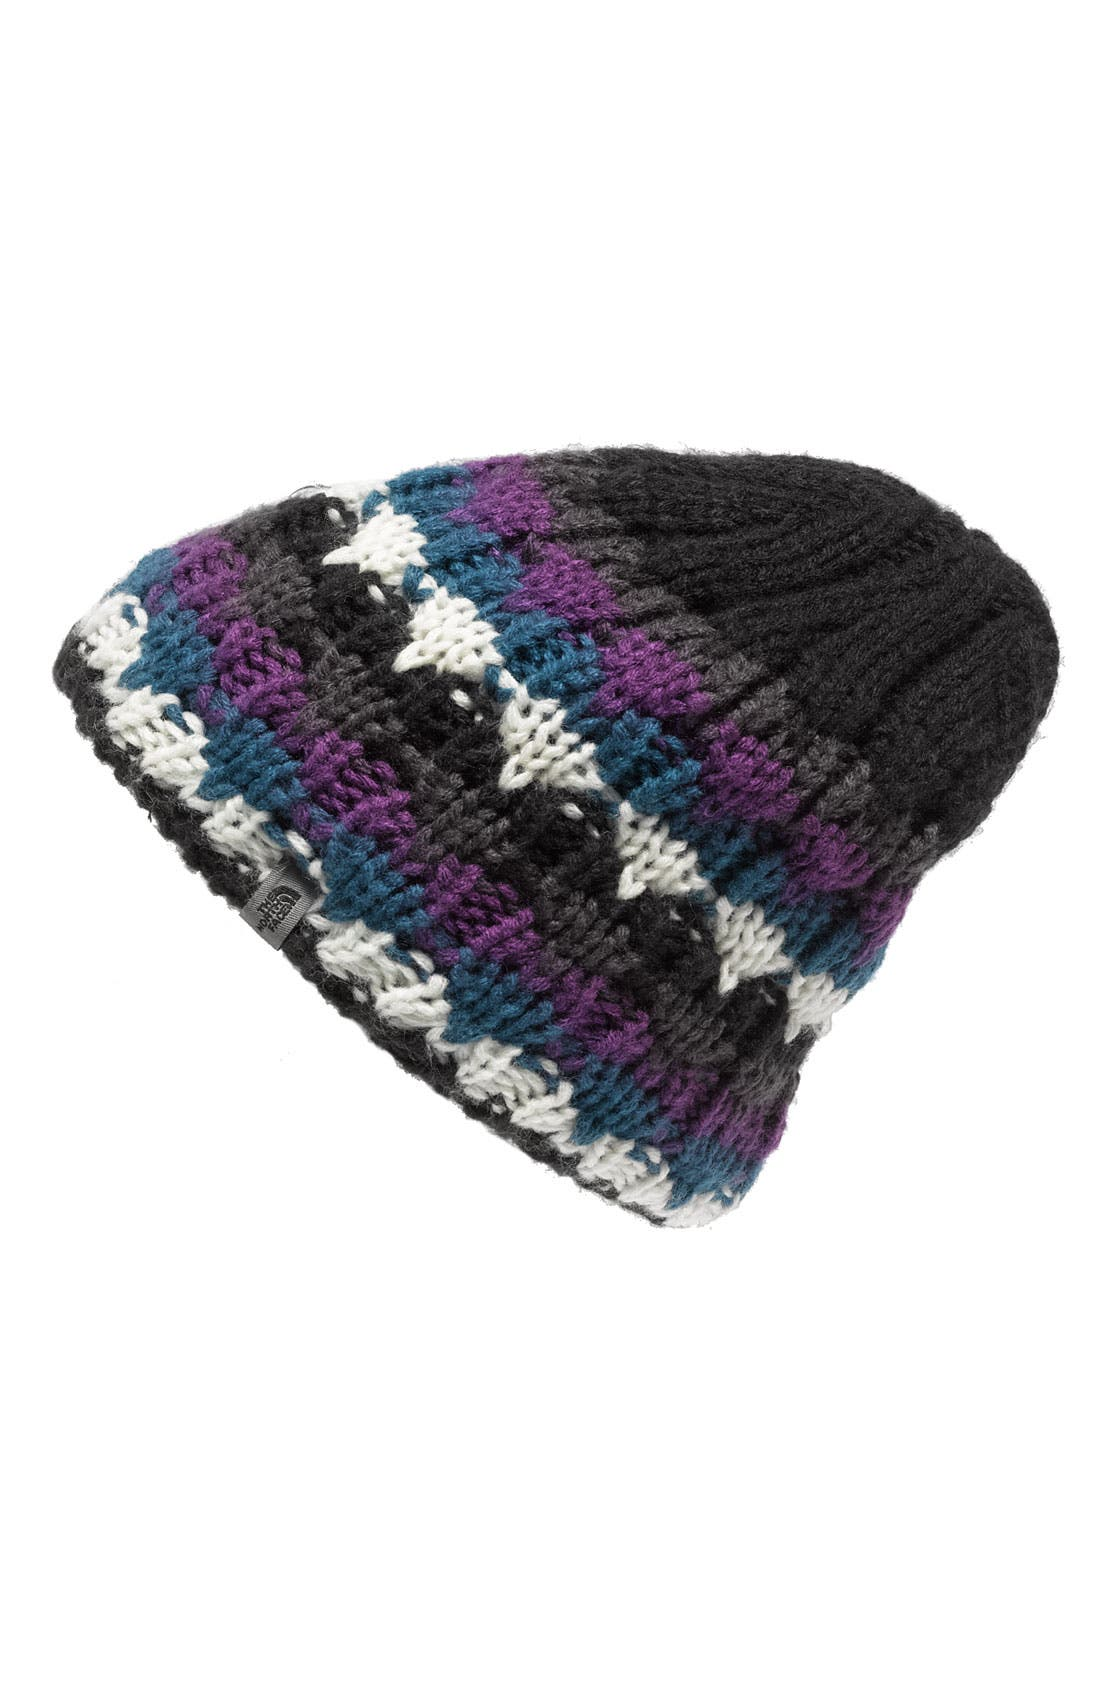 Main Image - The North Face 'Lizzy Bizzy' Beanie (Women)